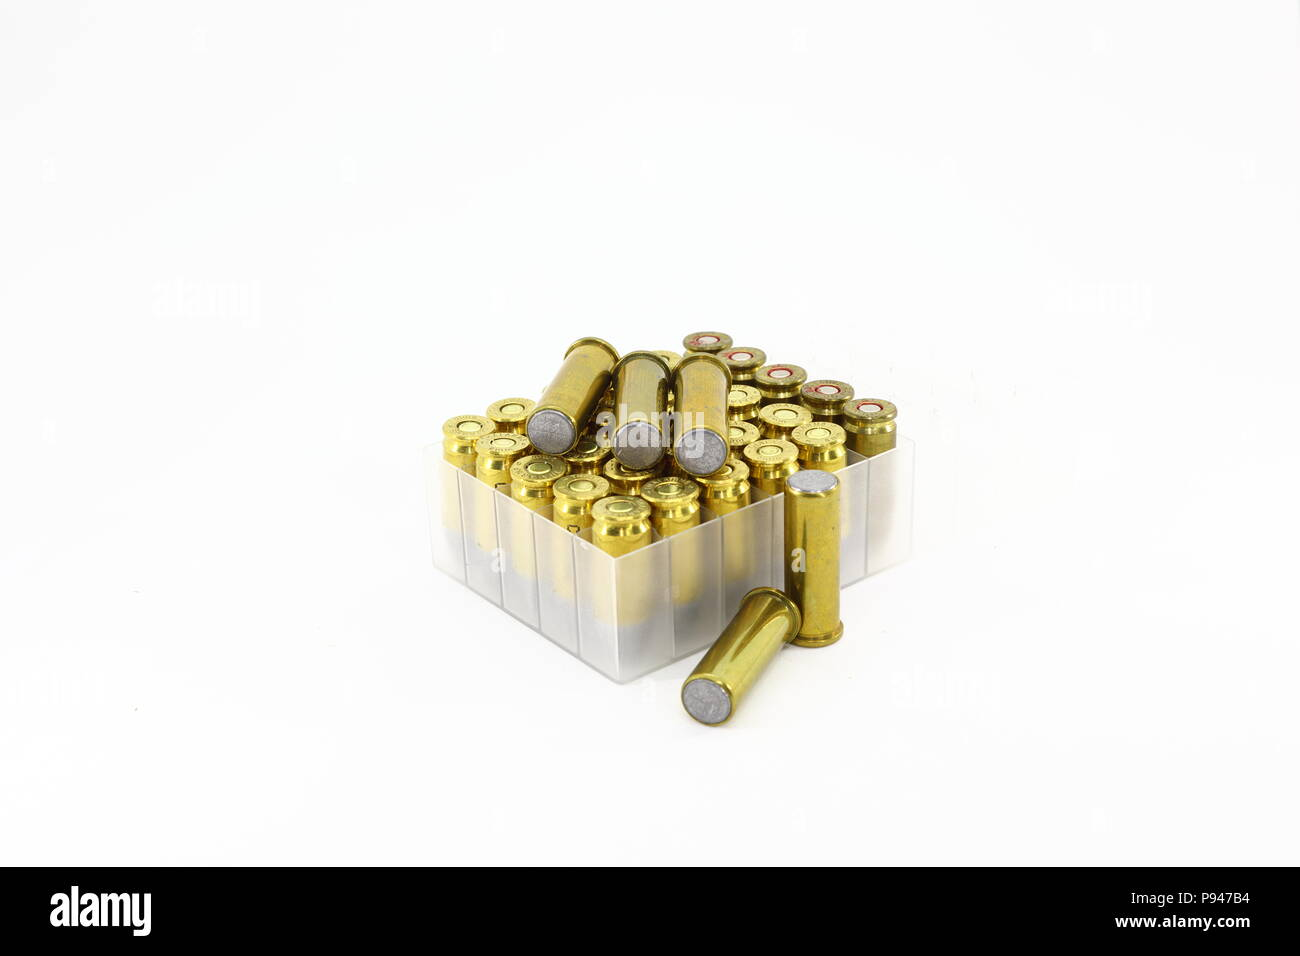 Vareity of bullet 9mm parabellum and .38 Wadcutter isolate on white background - Stock Image